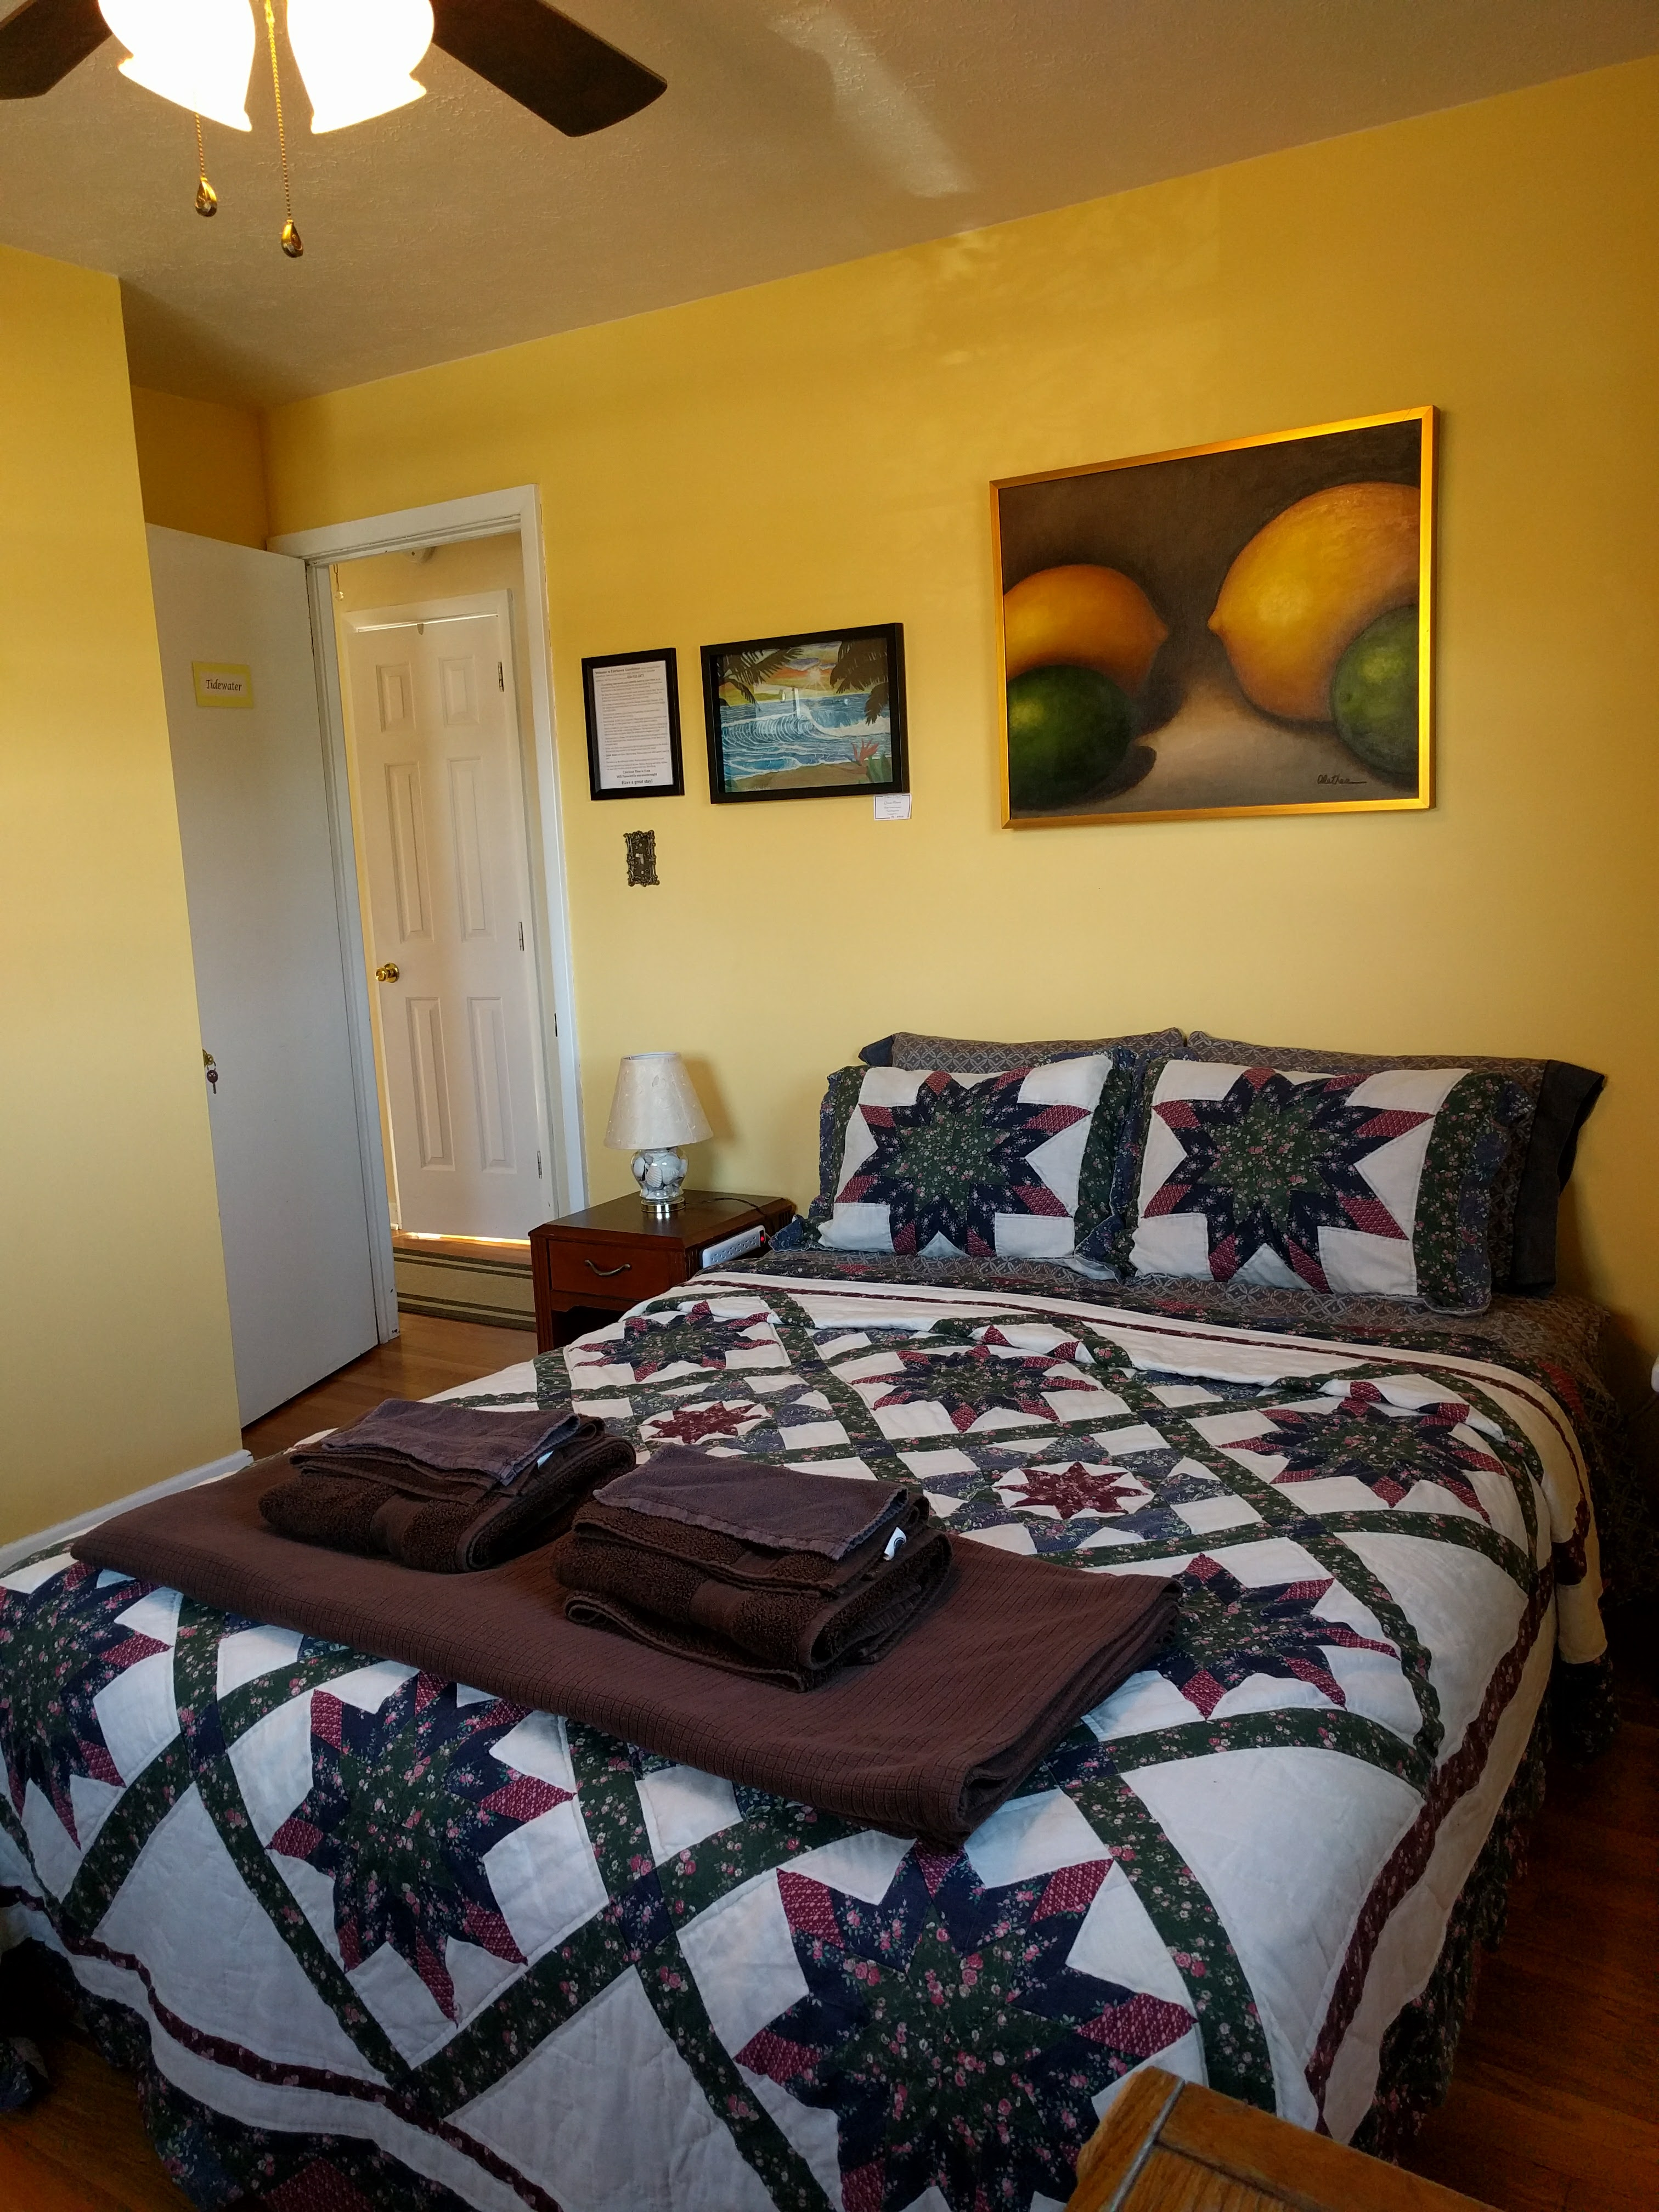 tidewater-room-at-fairhaven-guesthouse-charlottesville-va-portrait-4